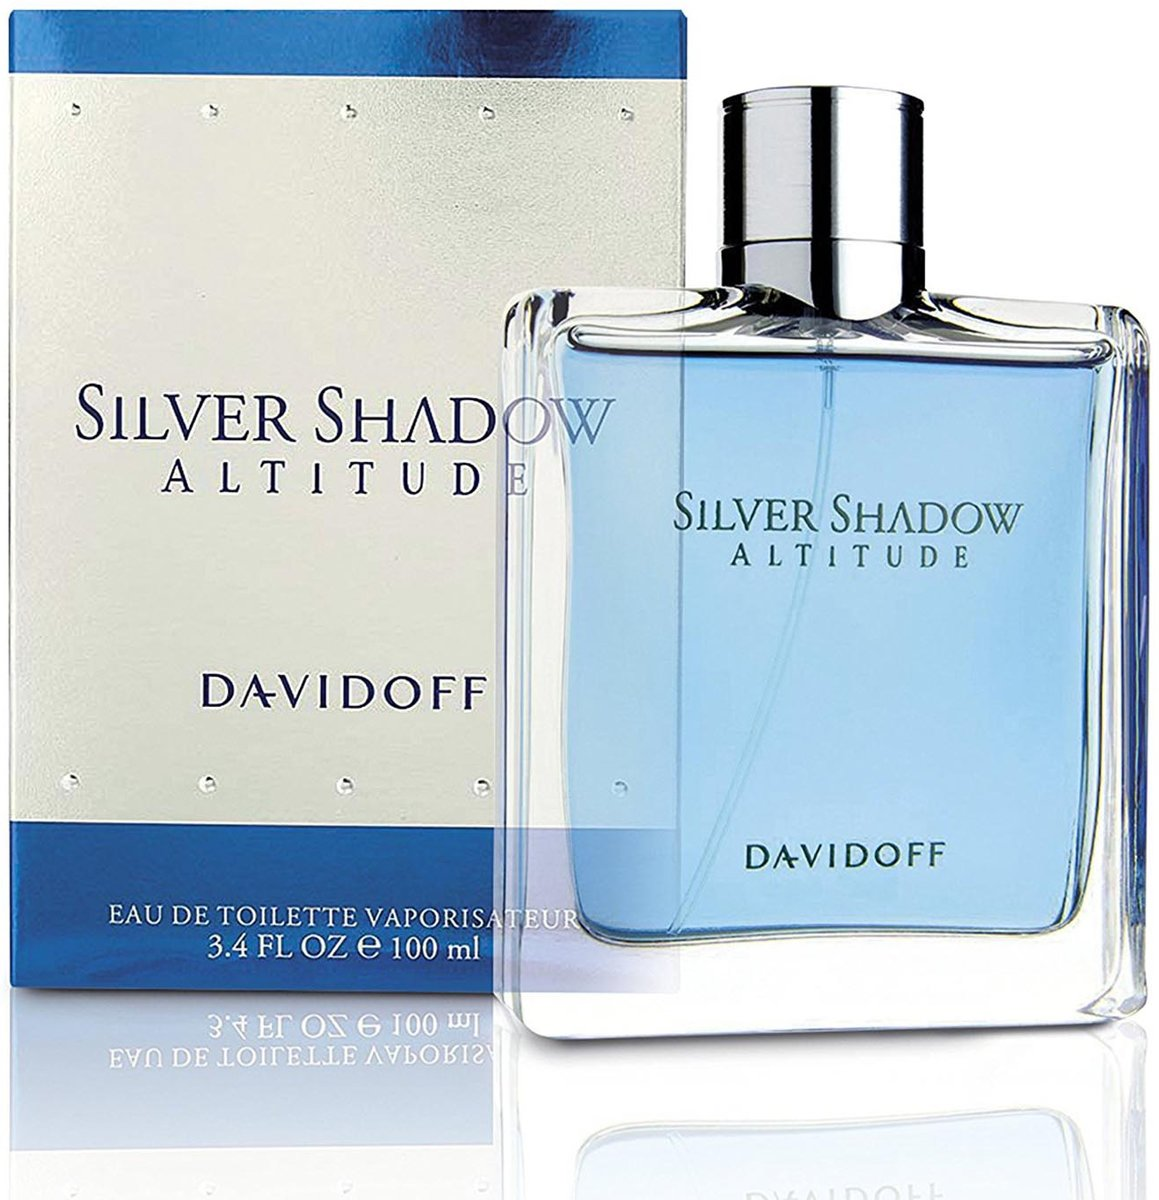 MULTI BUNDEL 2 stuks Davidoff Silver Shadow Altitude Eau De Toilette Spray 100ml